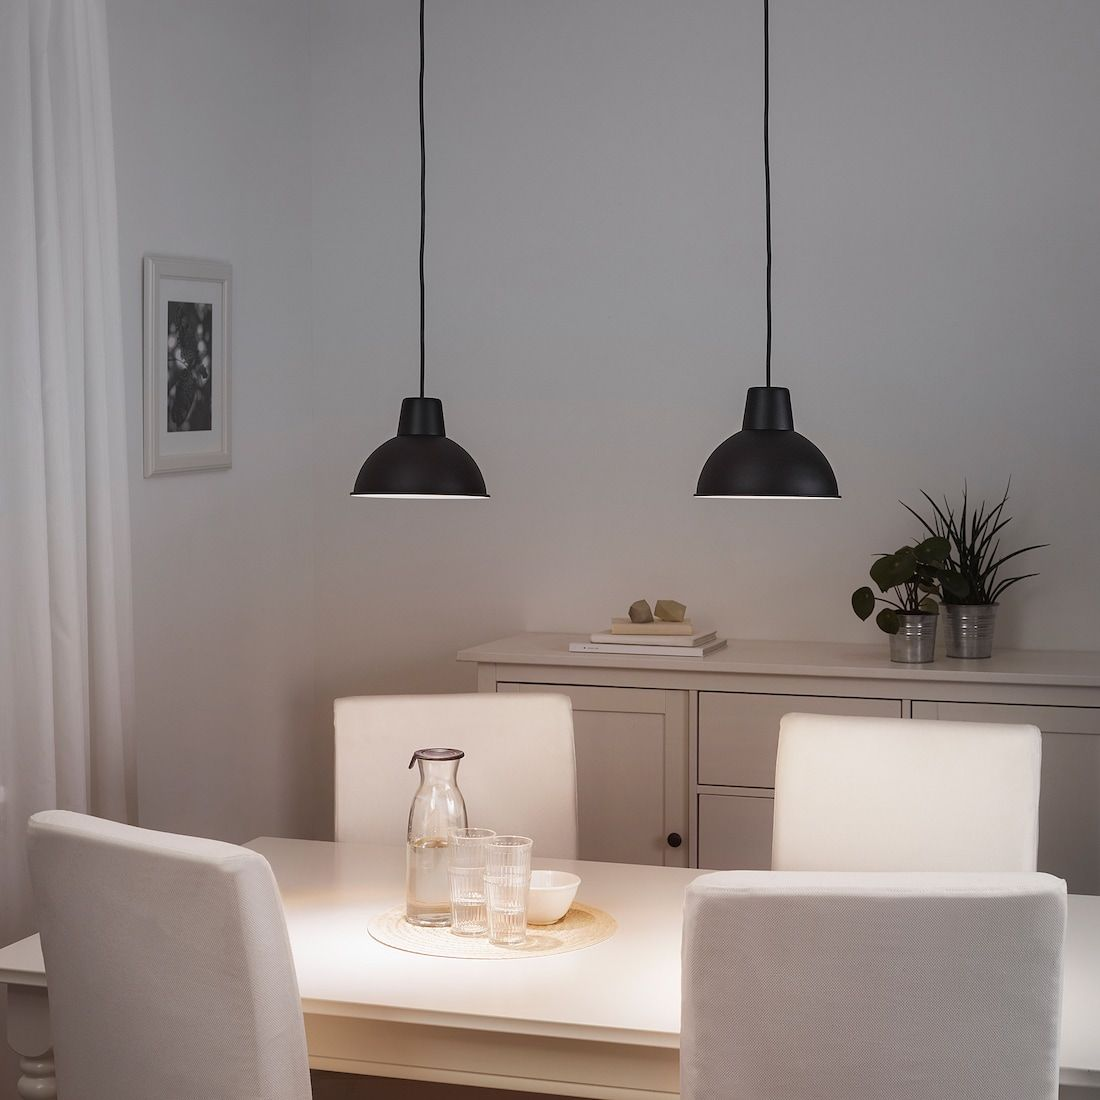 47++ Eclairer table salle manger ideas in 2021